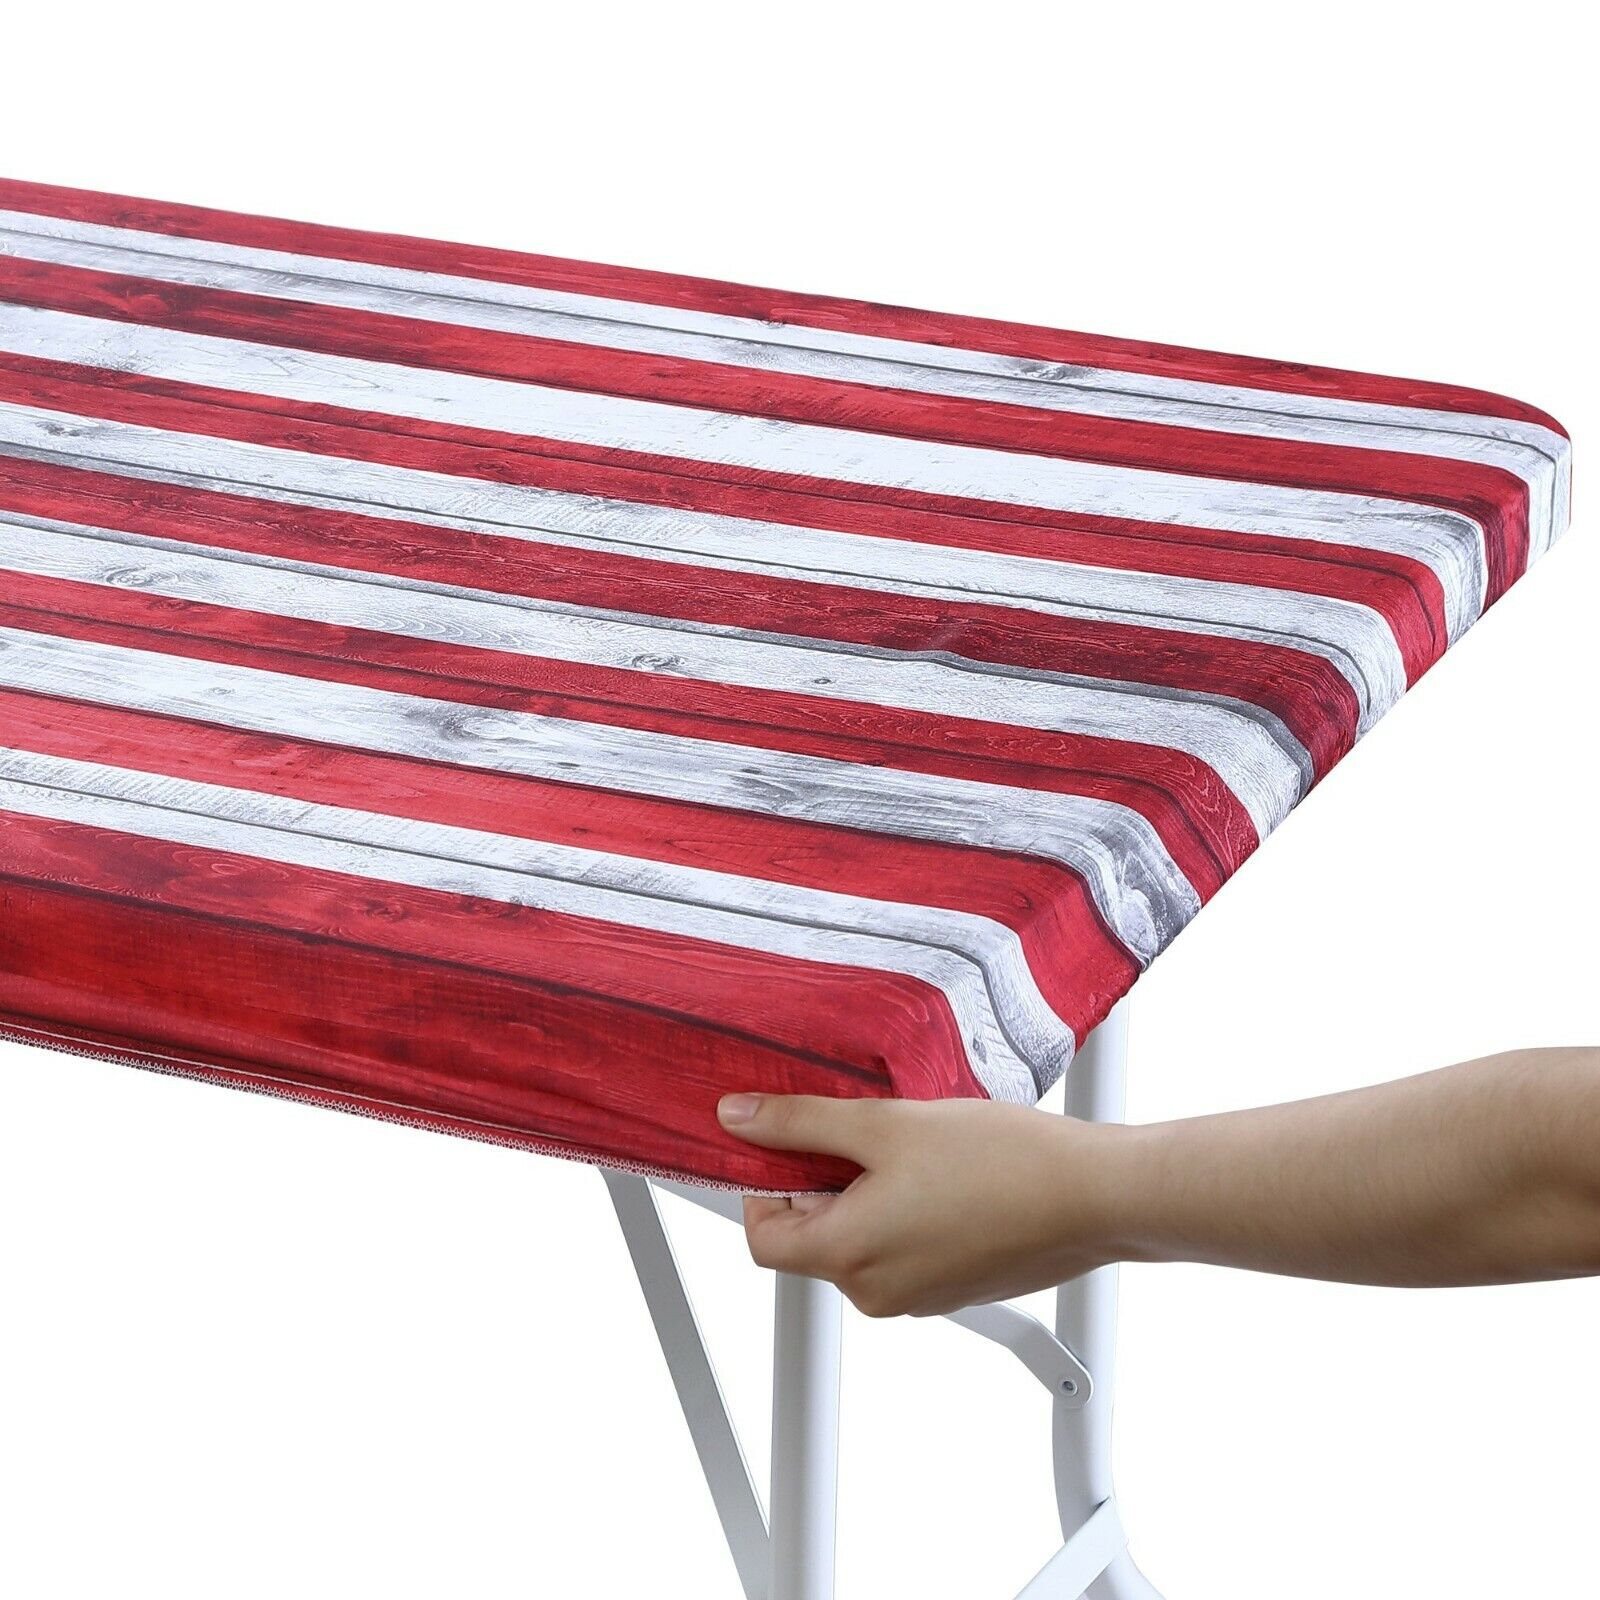 Brielle Home American Flag 100% Cotton Fabric Fitted Table Cover Accessories